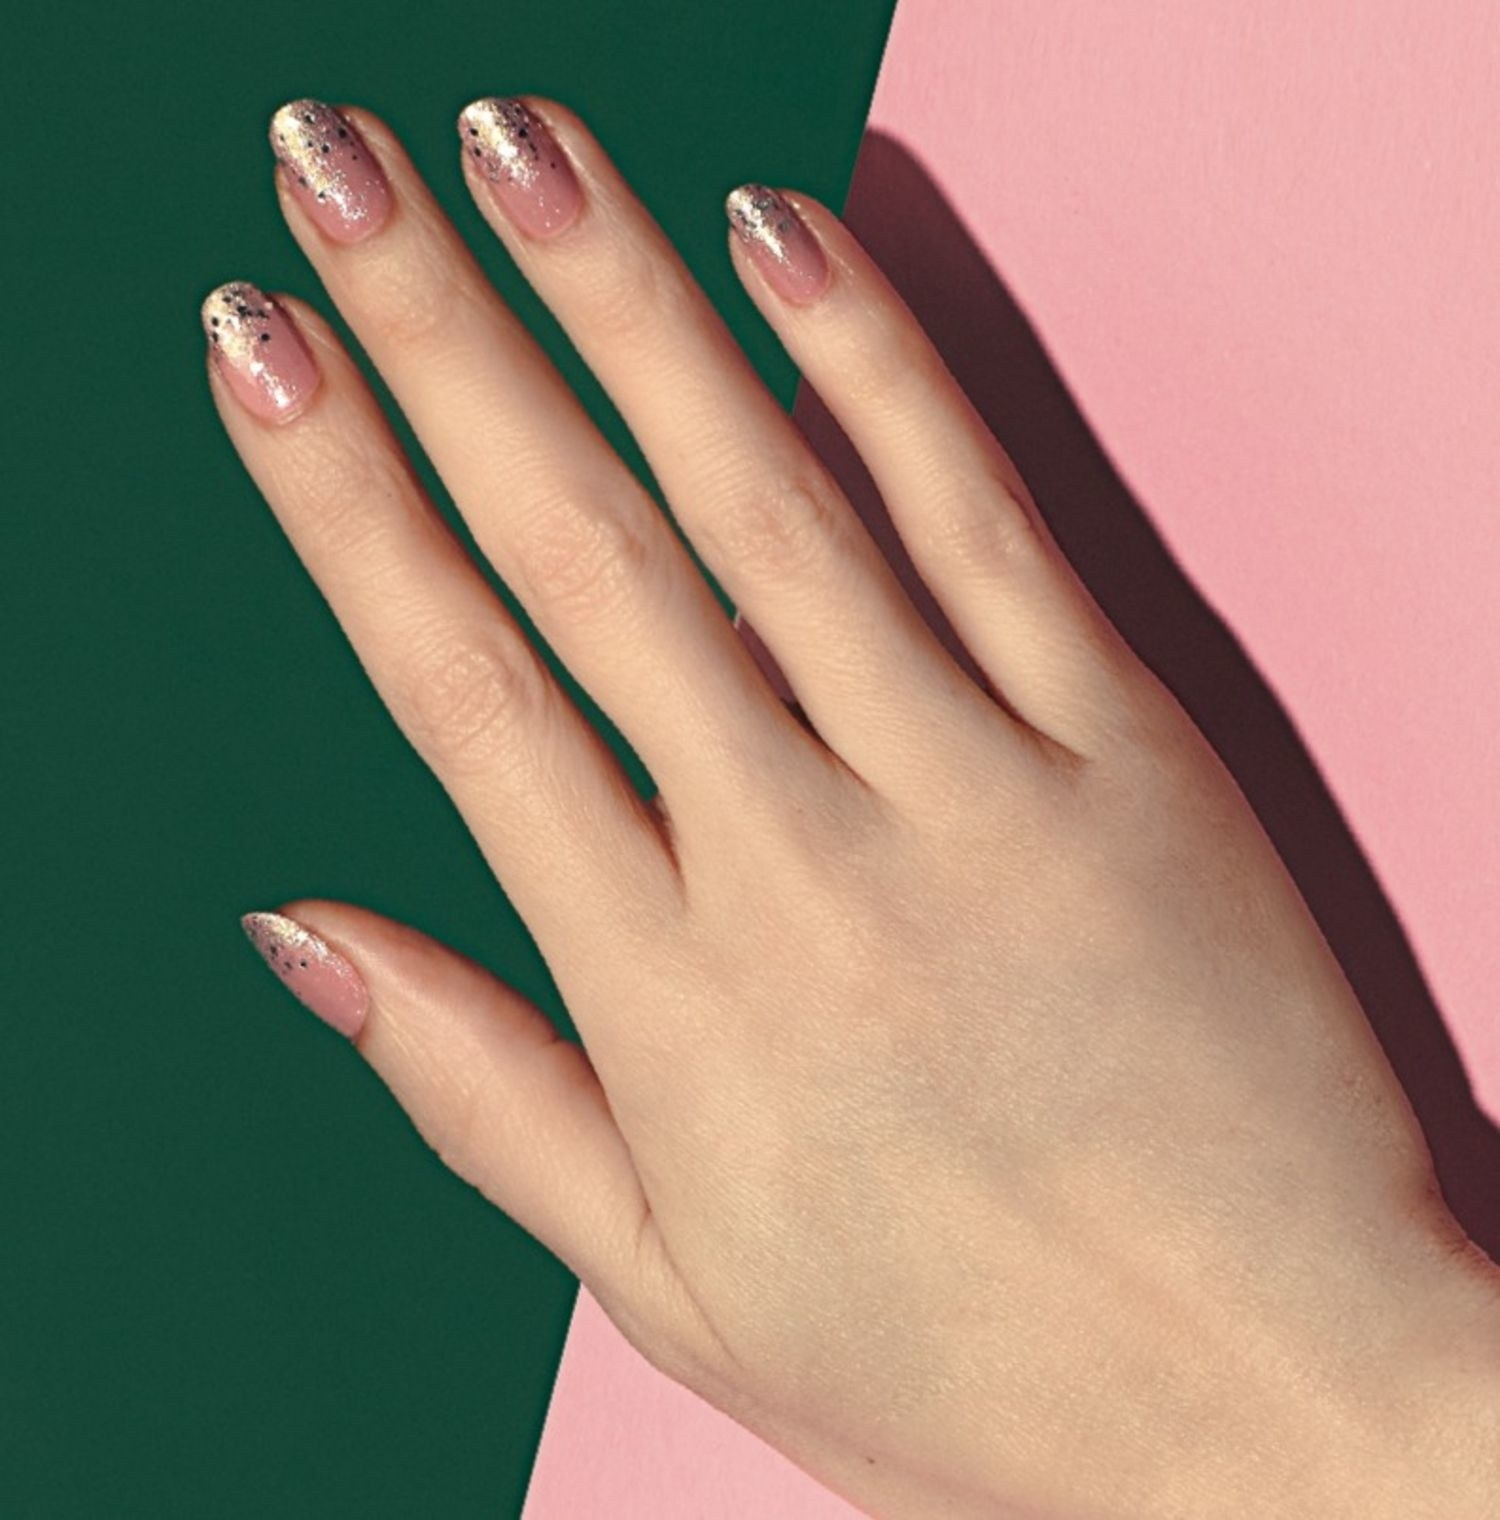 15 Wedding Nail Designs For The Bride To Be